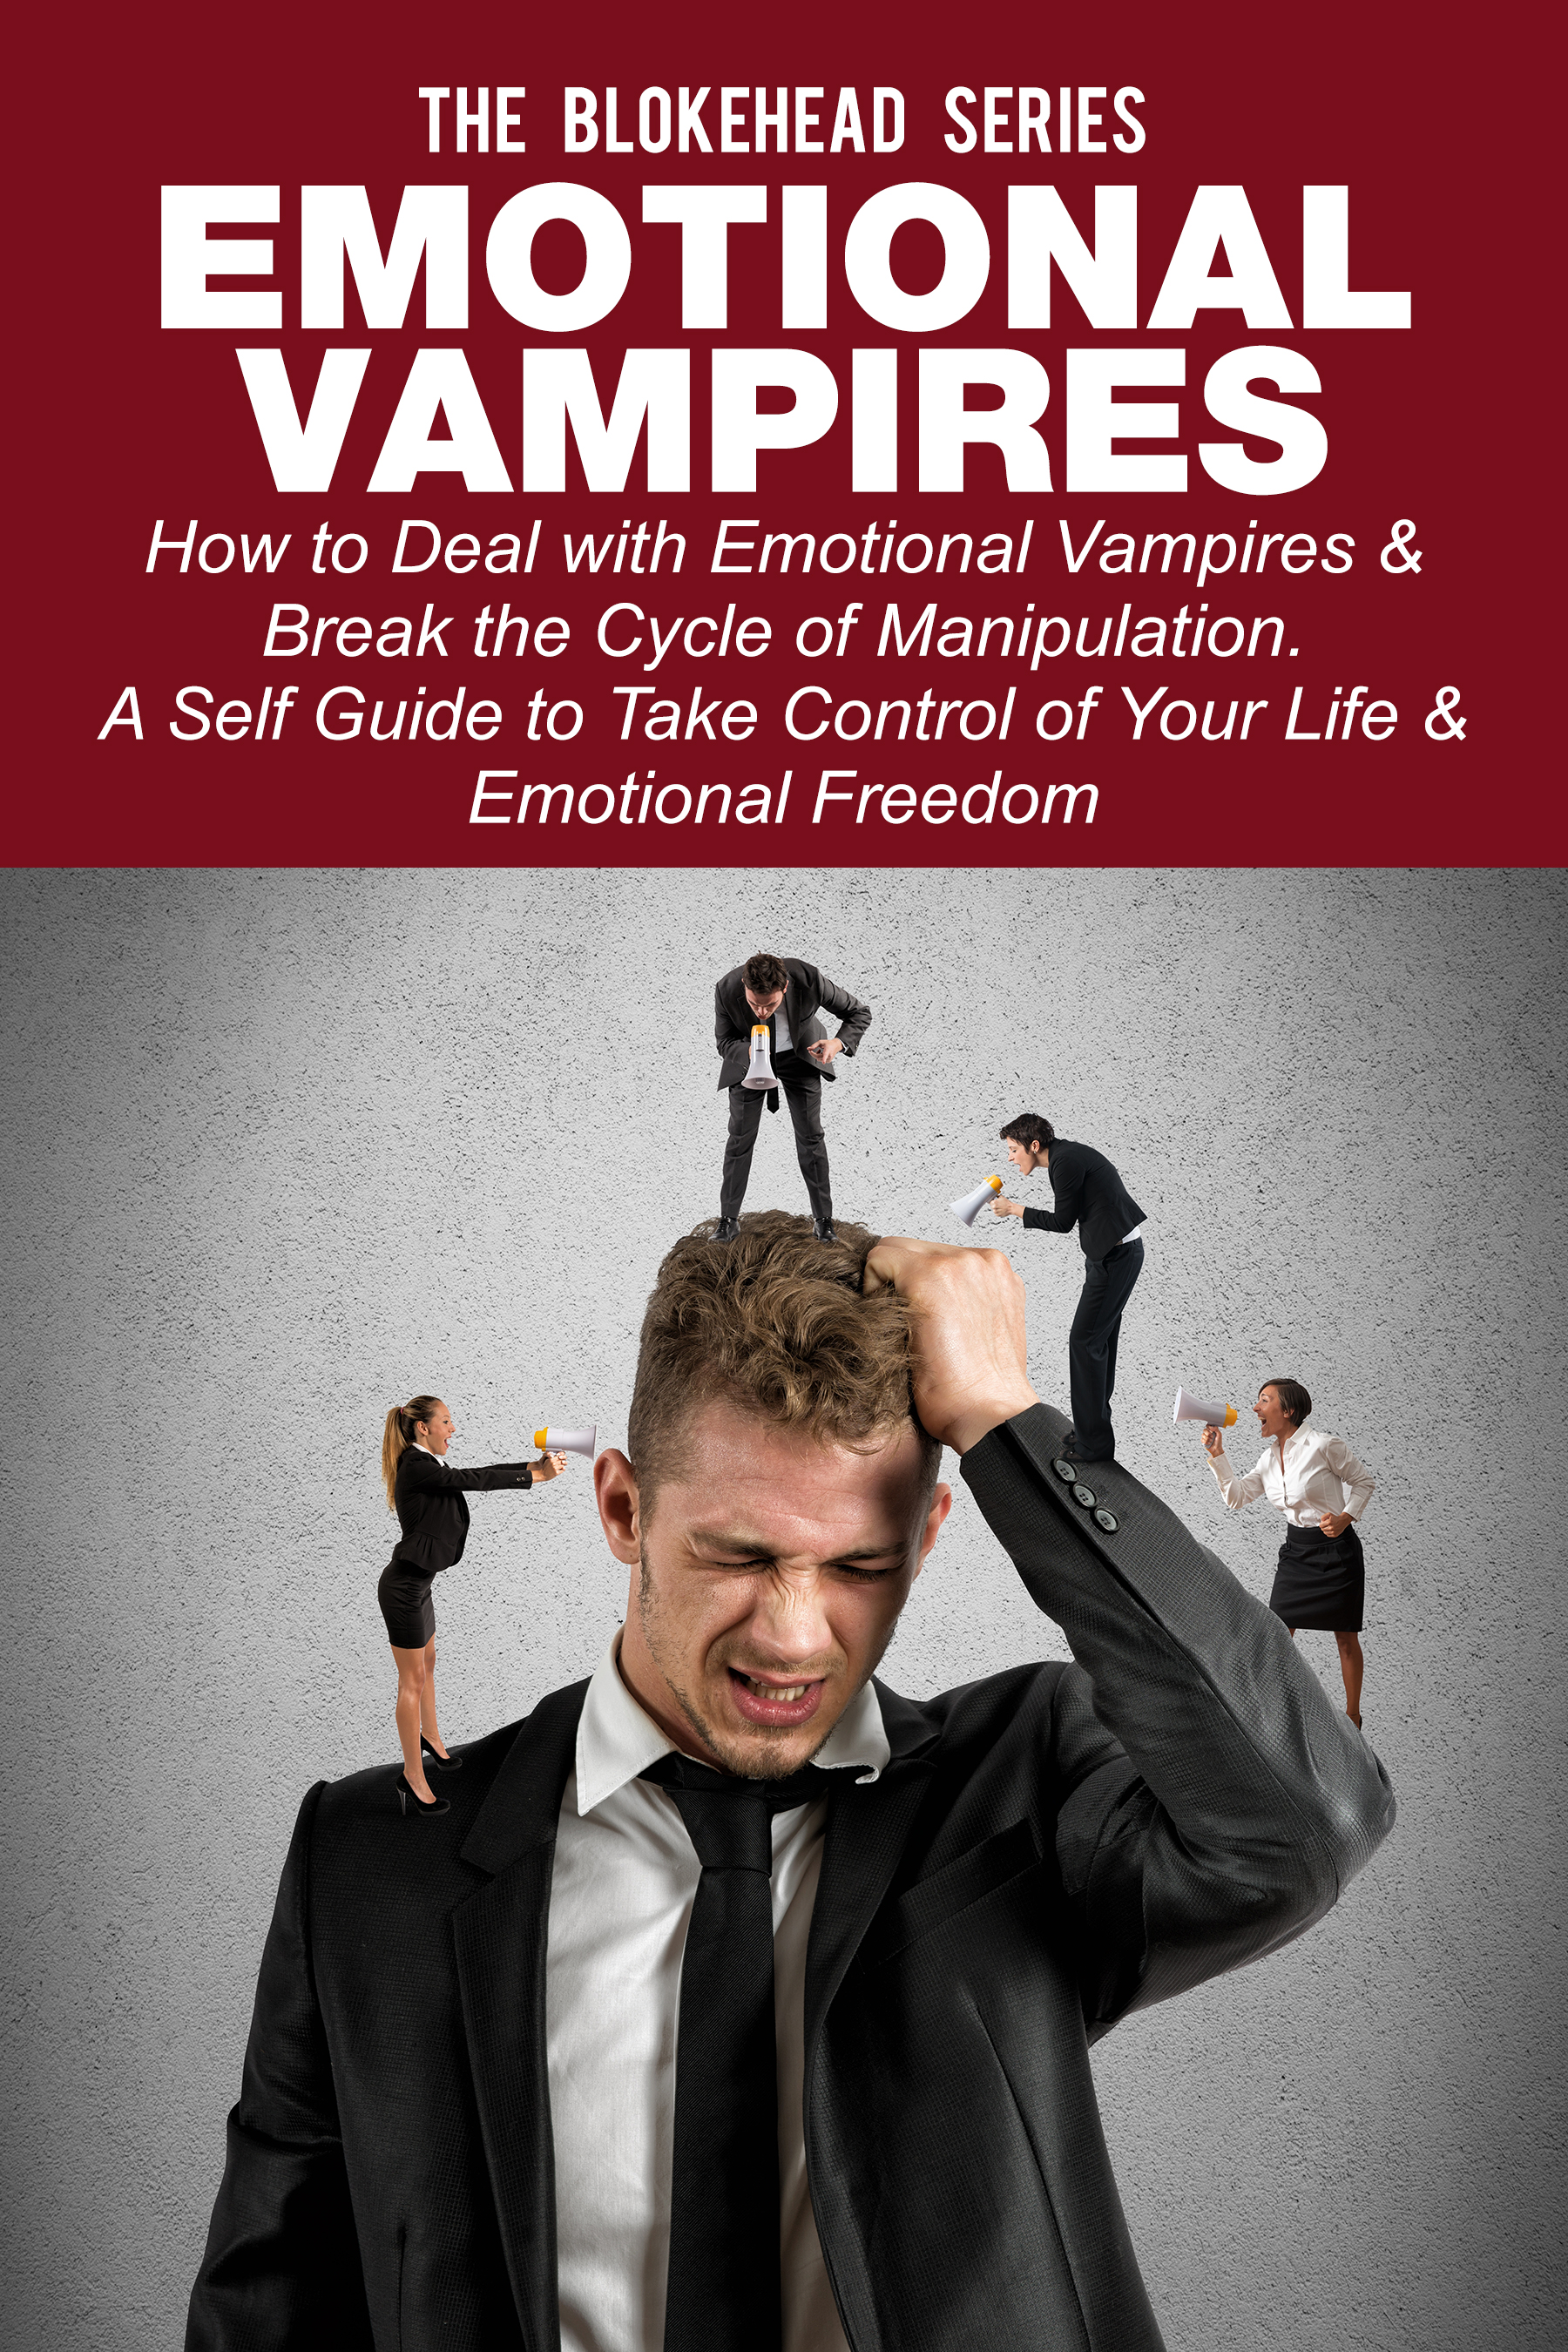 Emotional vampires: how to deal with emotional vampires & break the cycle of manipulation.